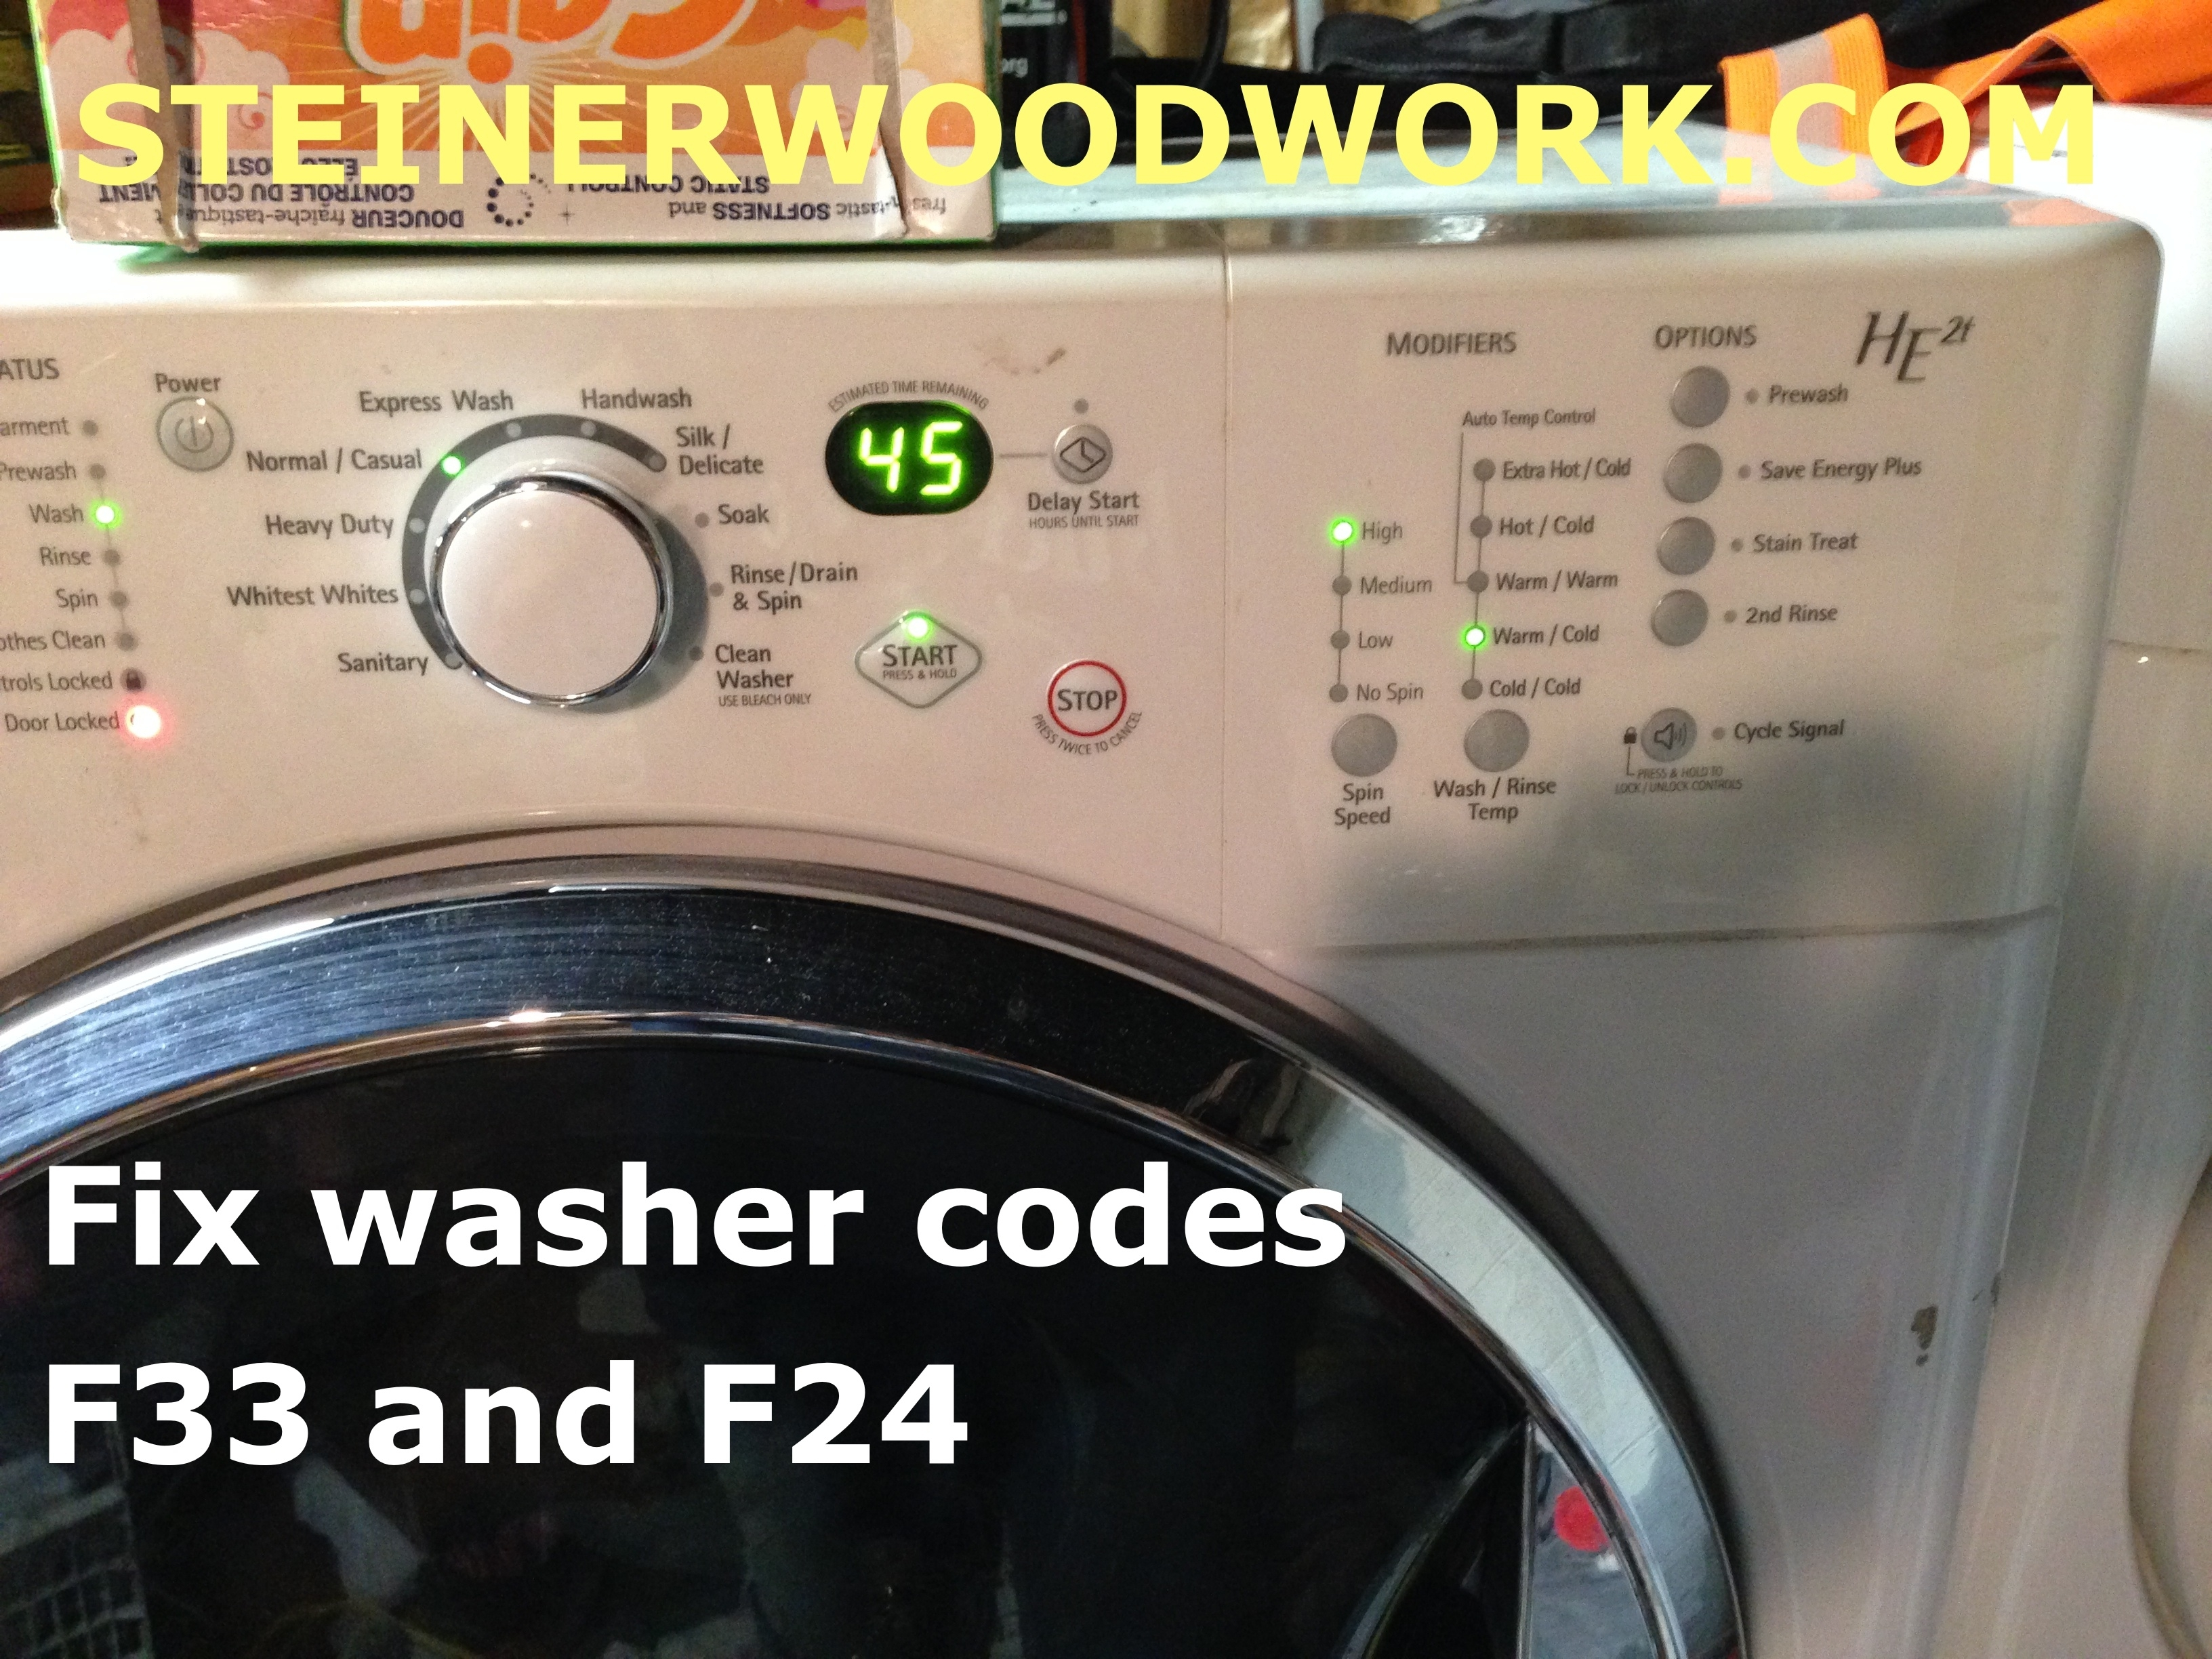 kenmore he2 plus washer parts diagram sony xplod cdx gt310 wiring automotive